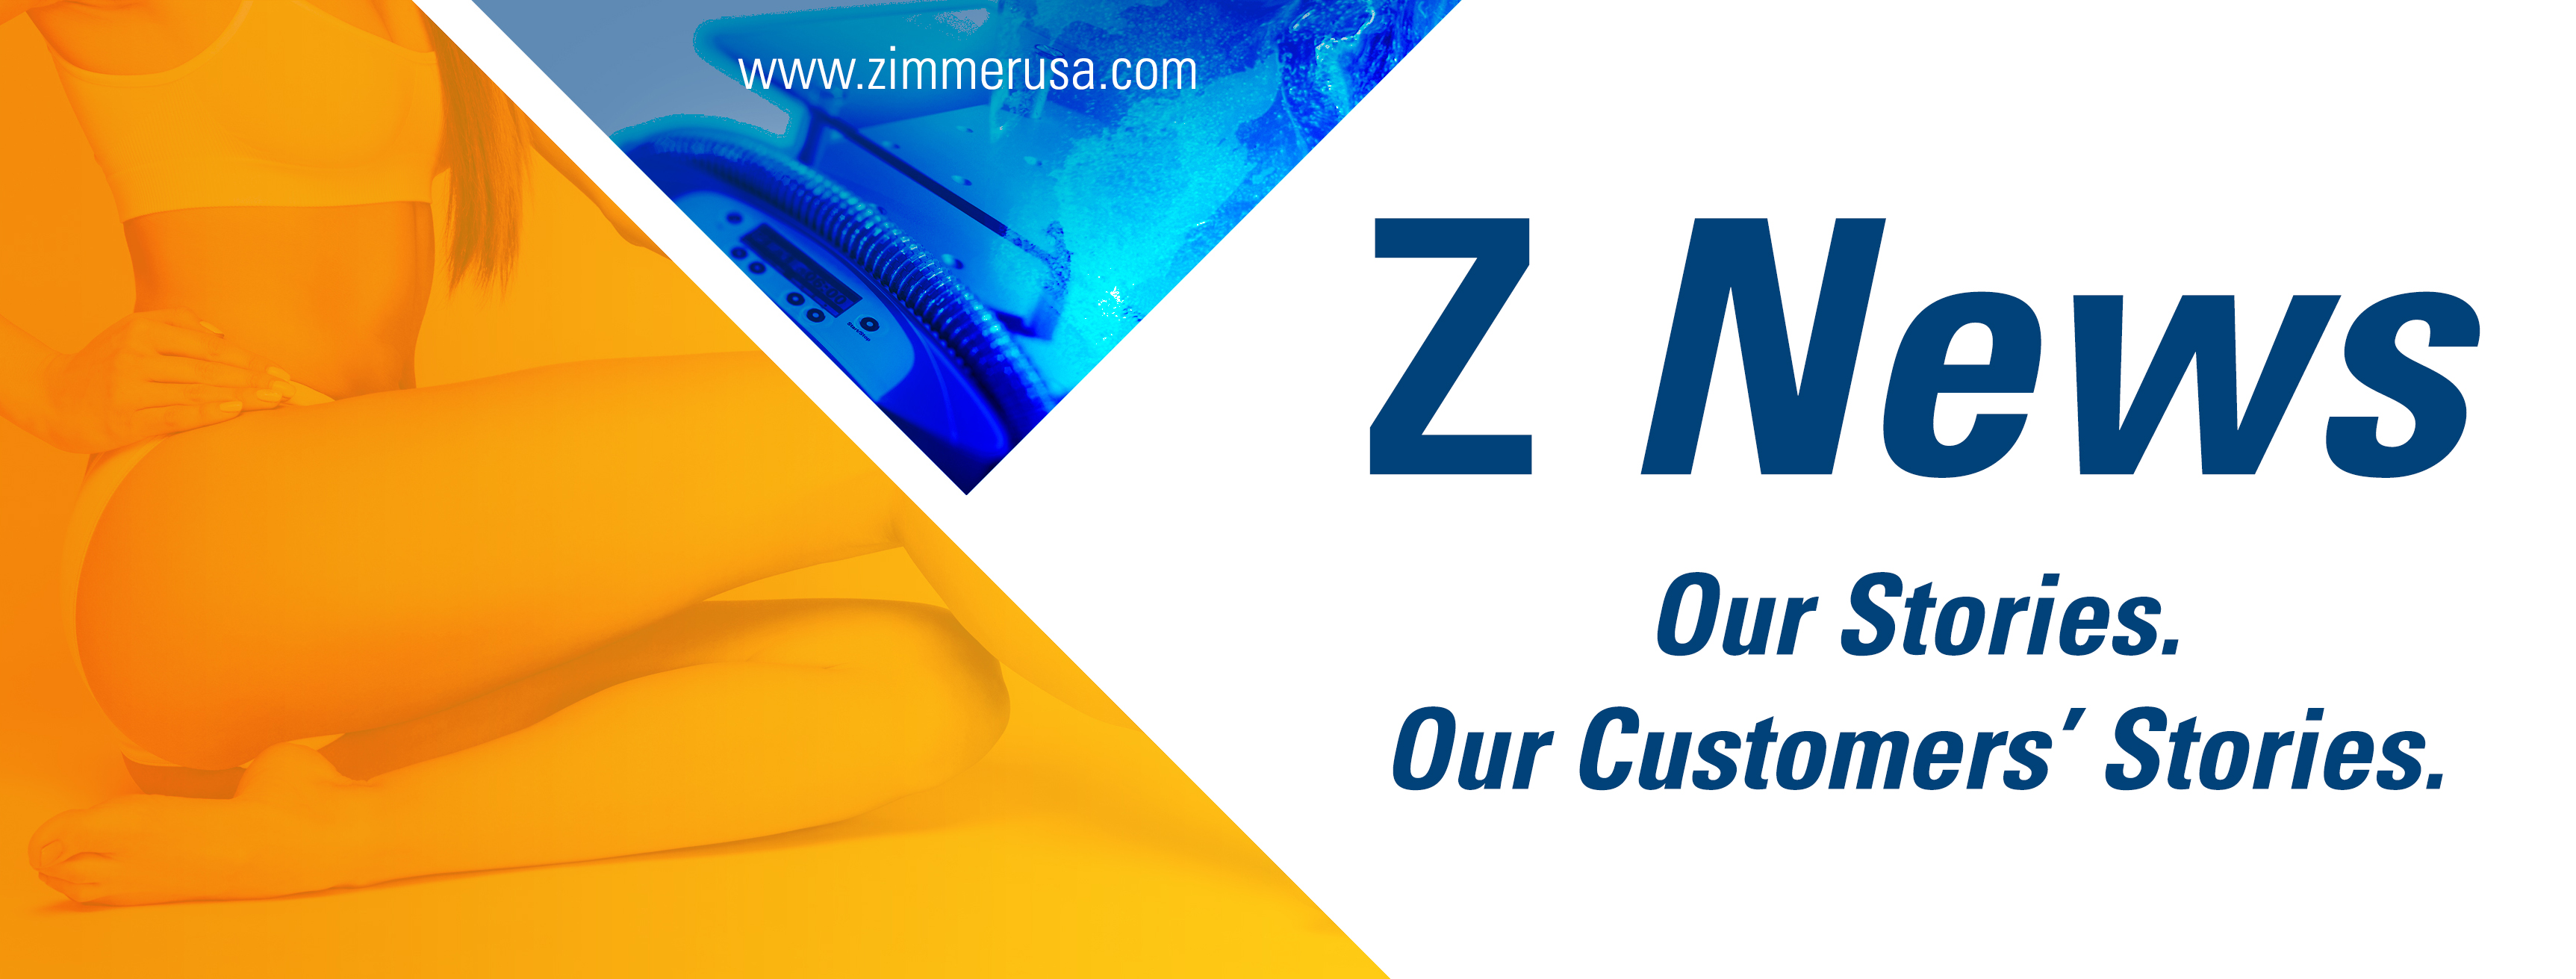 Z News - Our Stories. Our Customers' Stories.